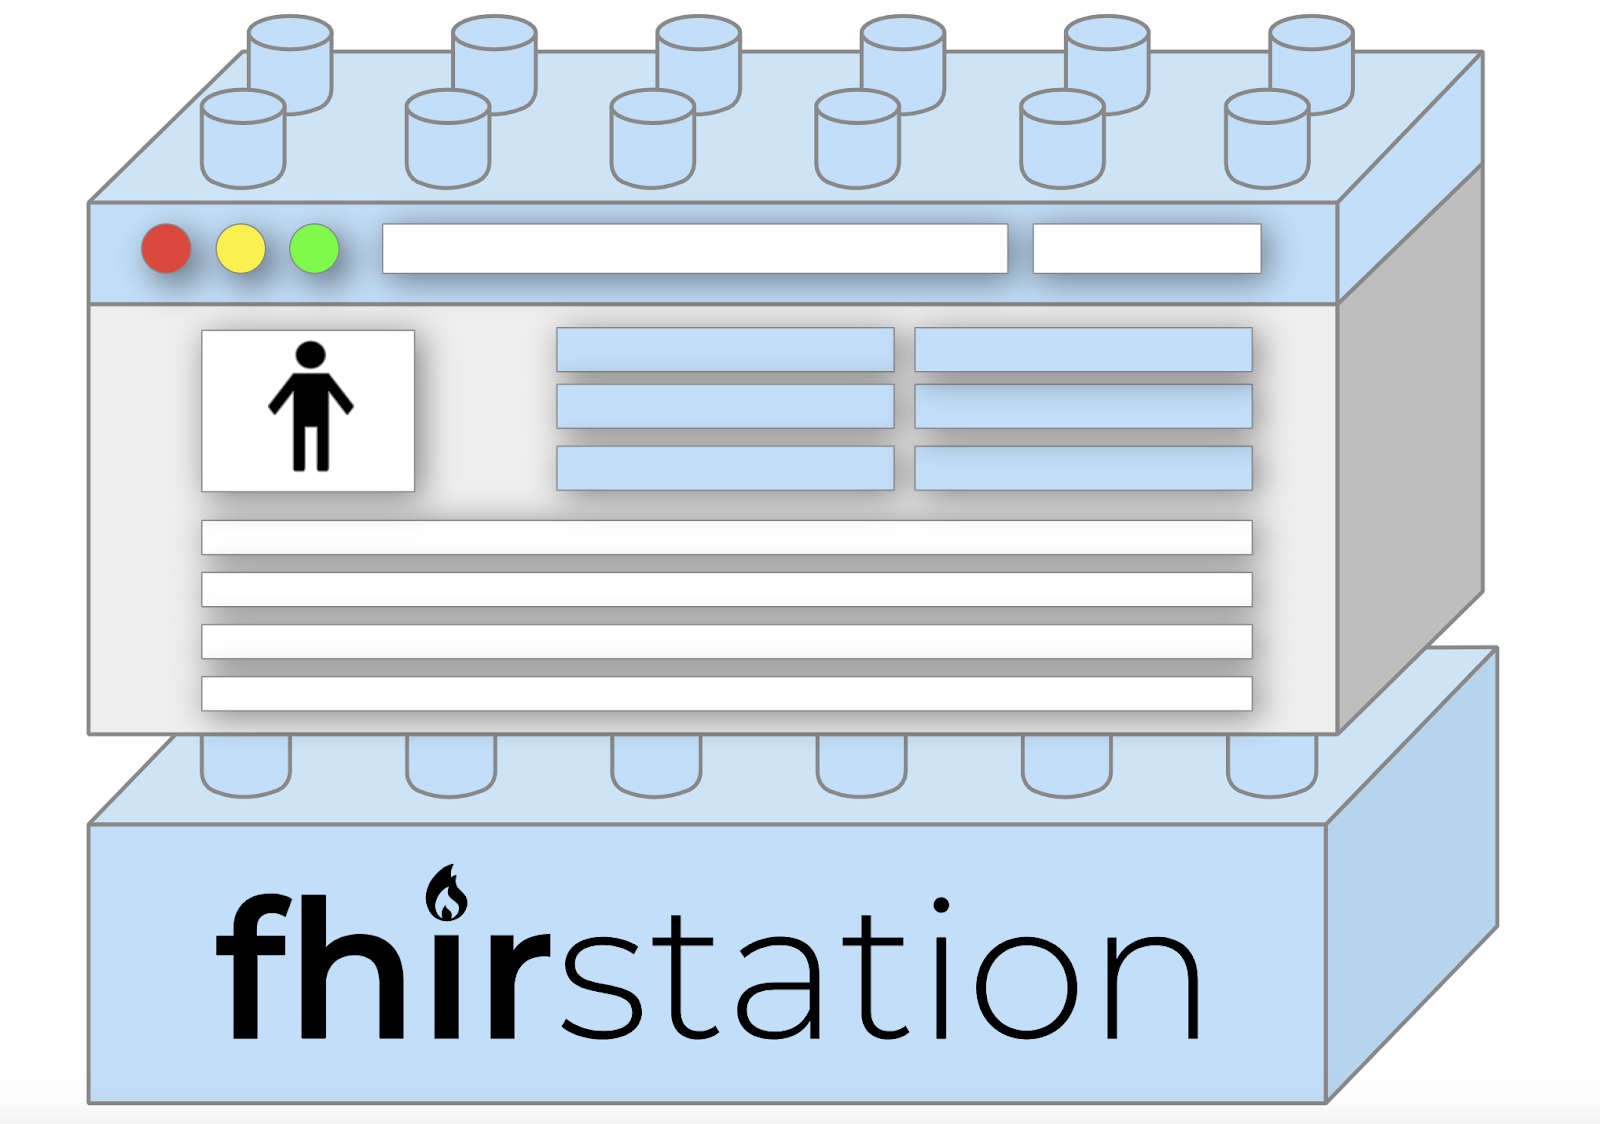 fhirstation graphic